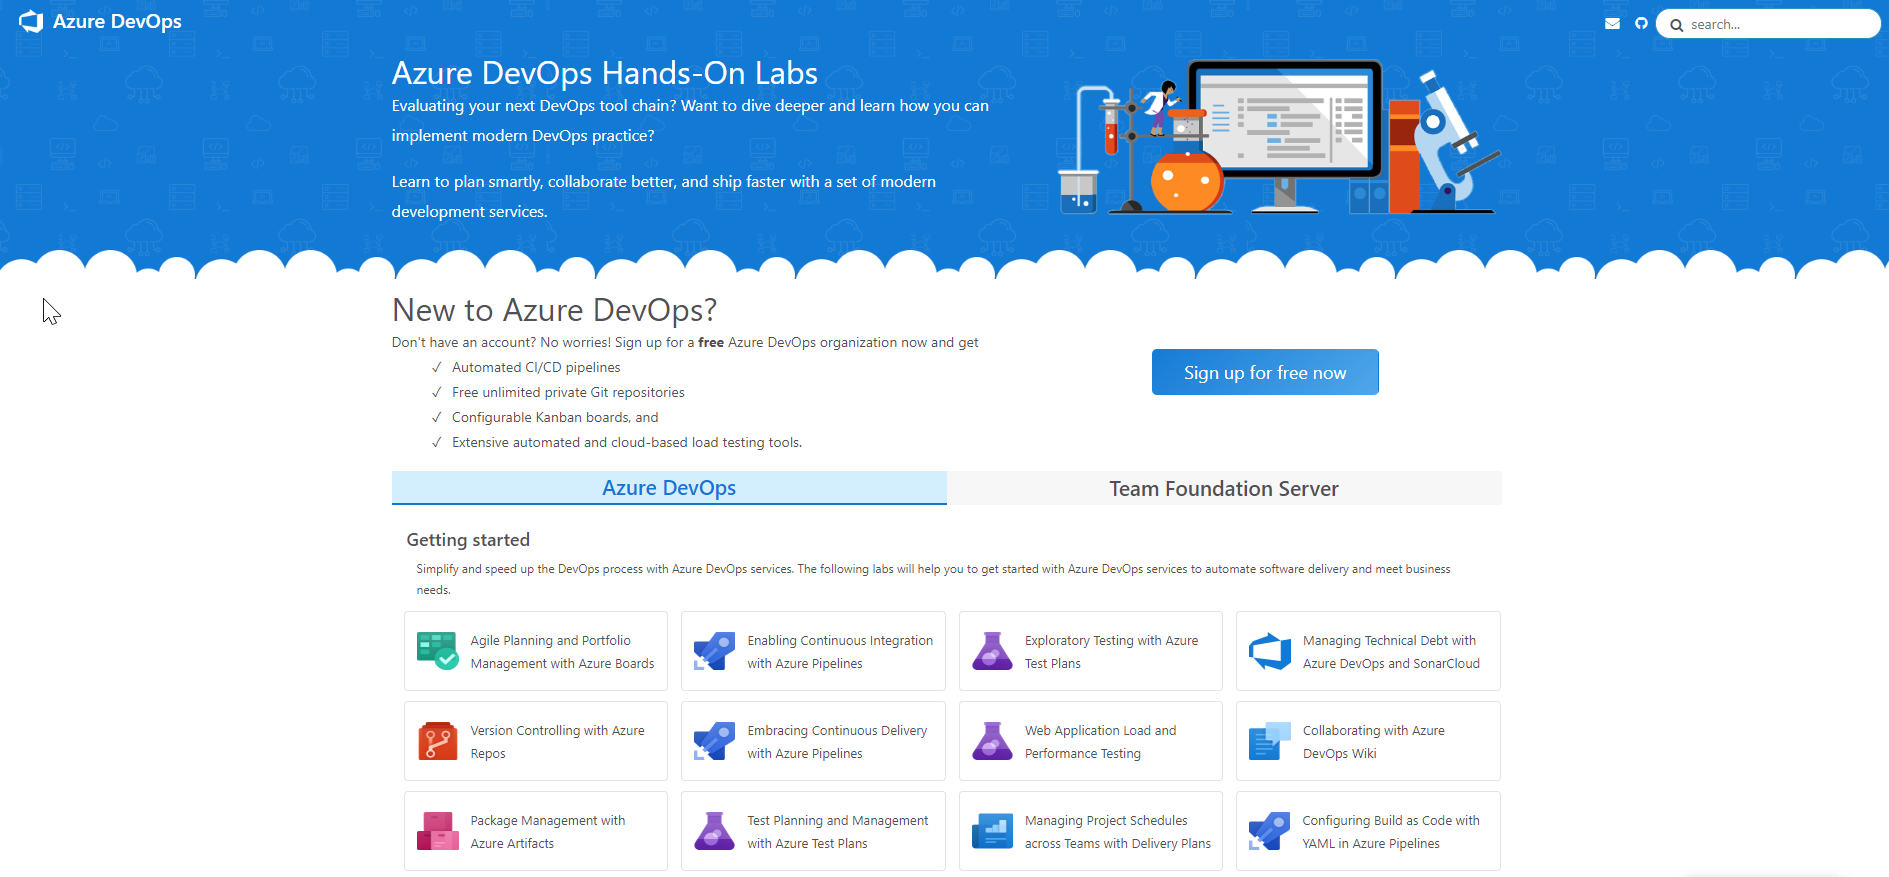 Azure DevOps Hands-On Labs | Azure DevOps Hands-on-Labs